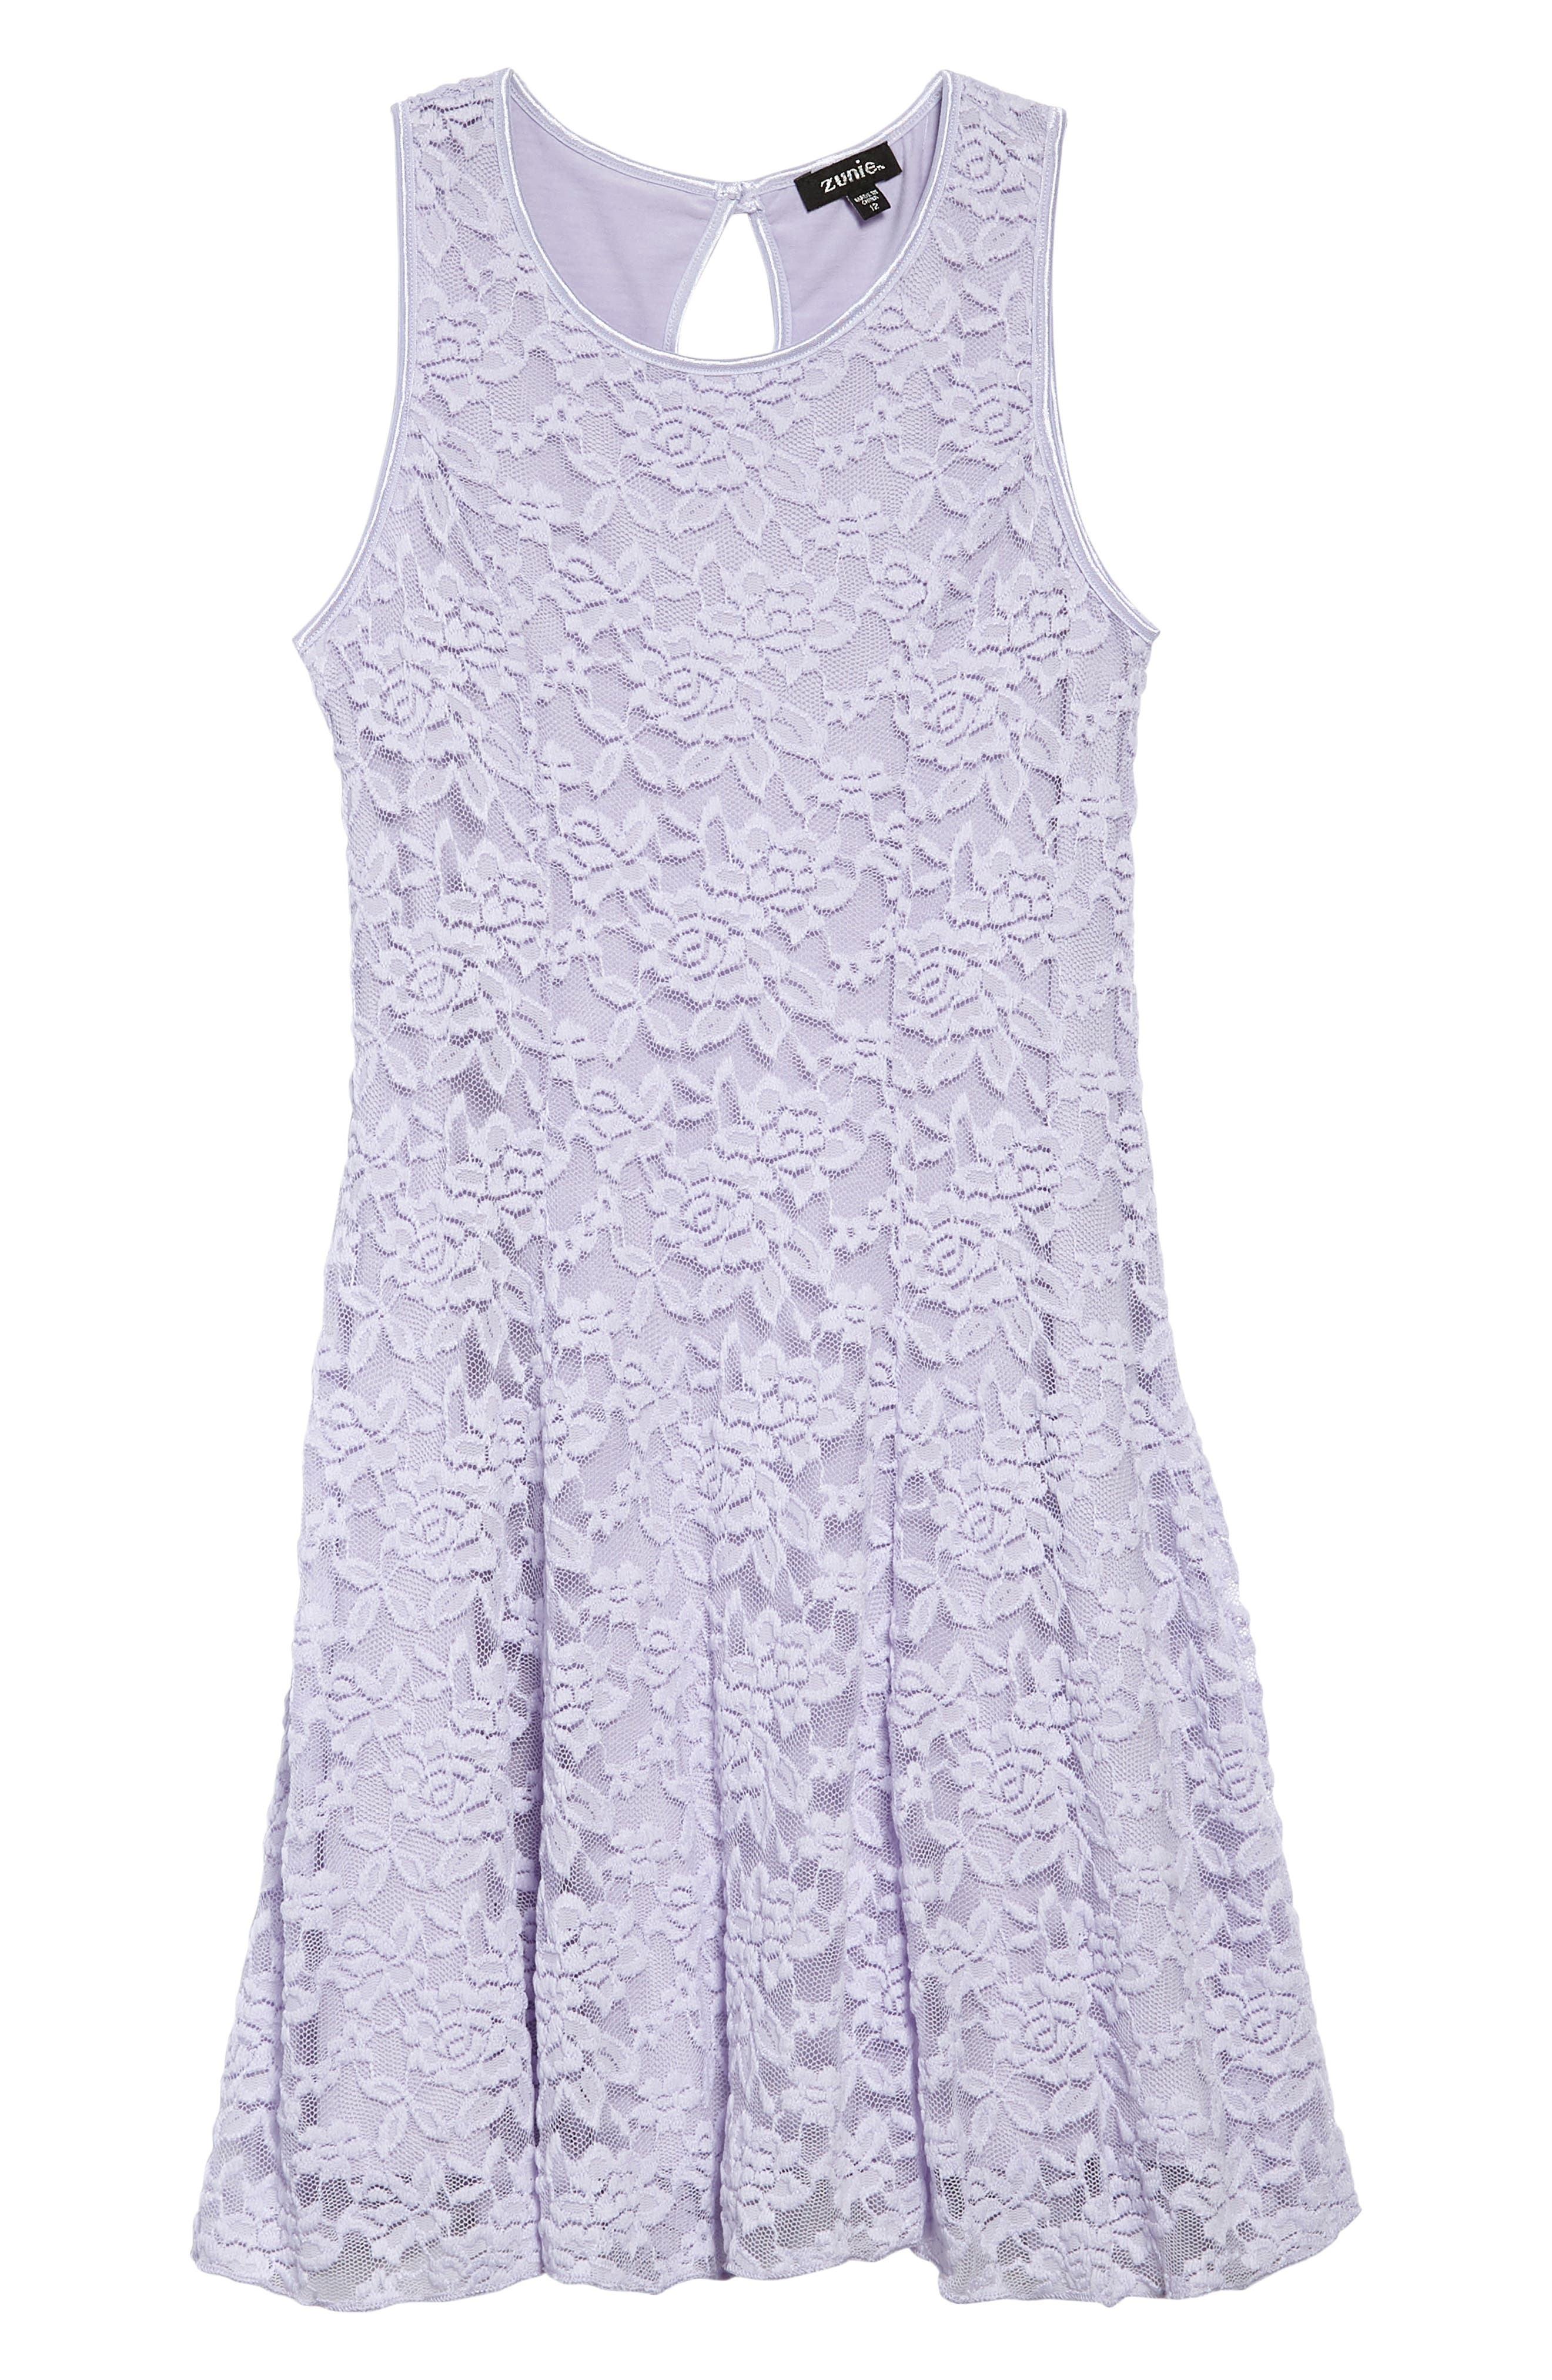 Floral Lace Sleeveless Dress,                         Main,                         color, 530